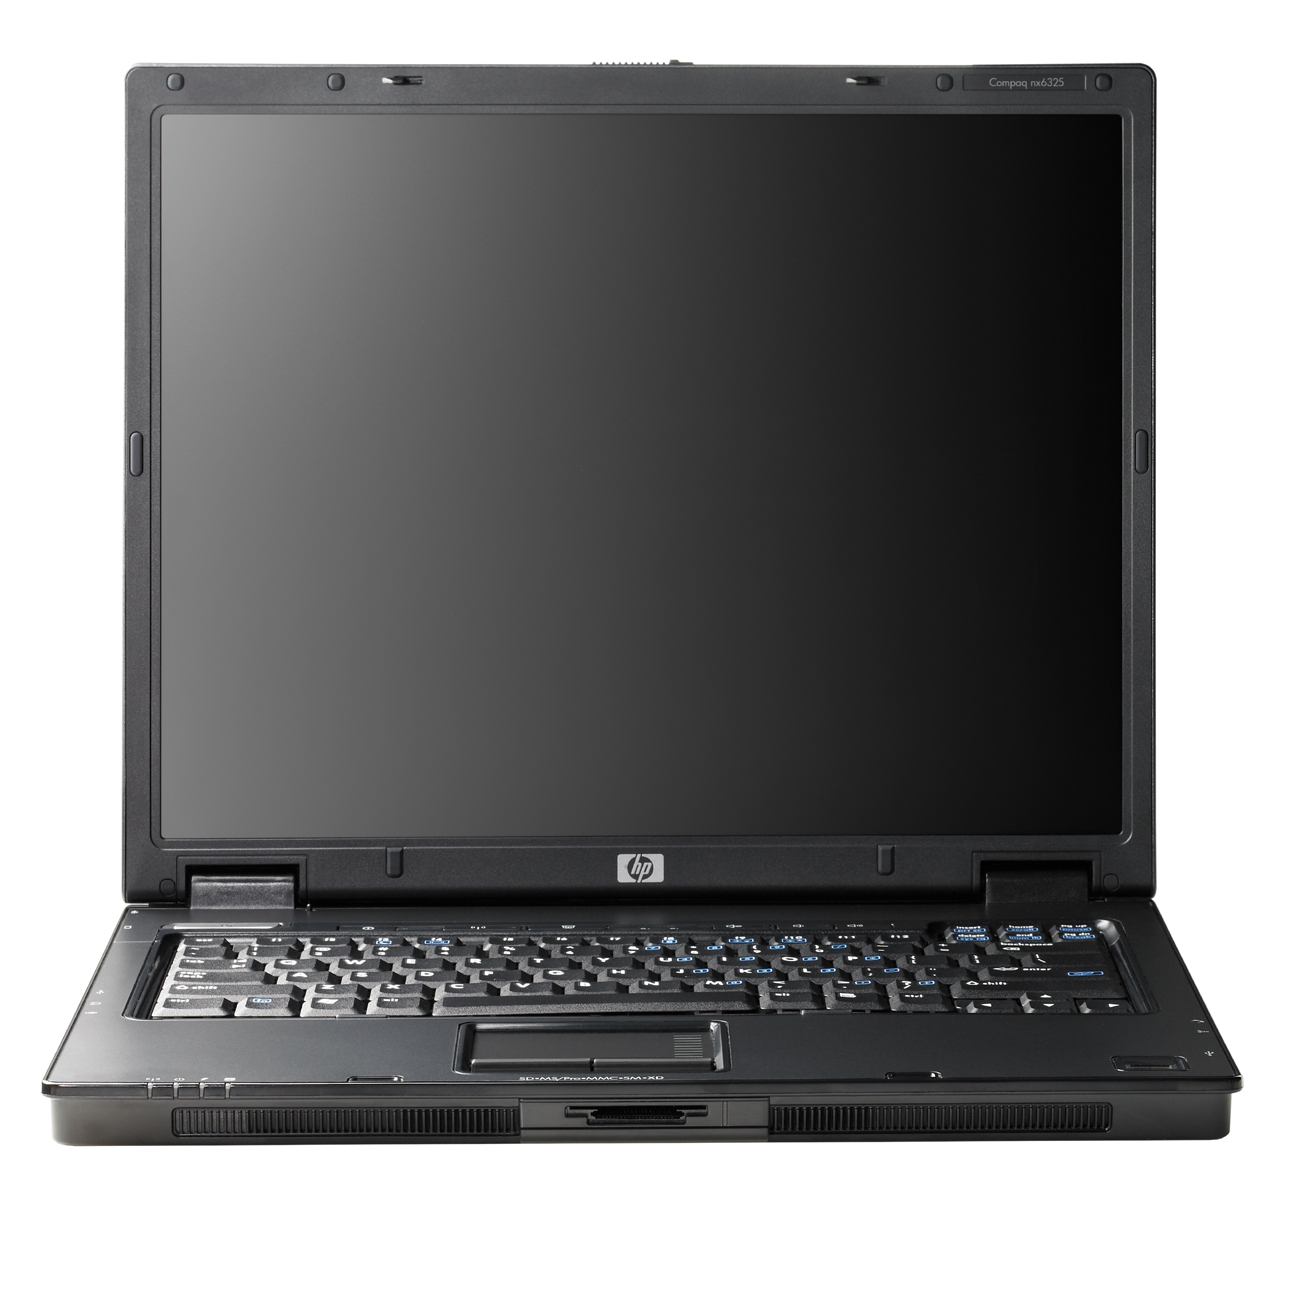 HP Compaq nw9440 Mobile Workstation Intel WLAN 64Bit